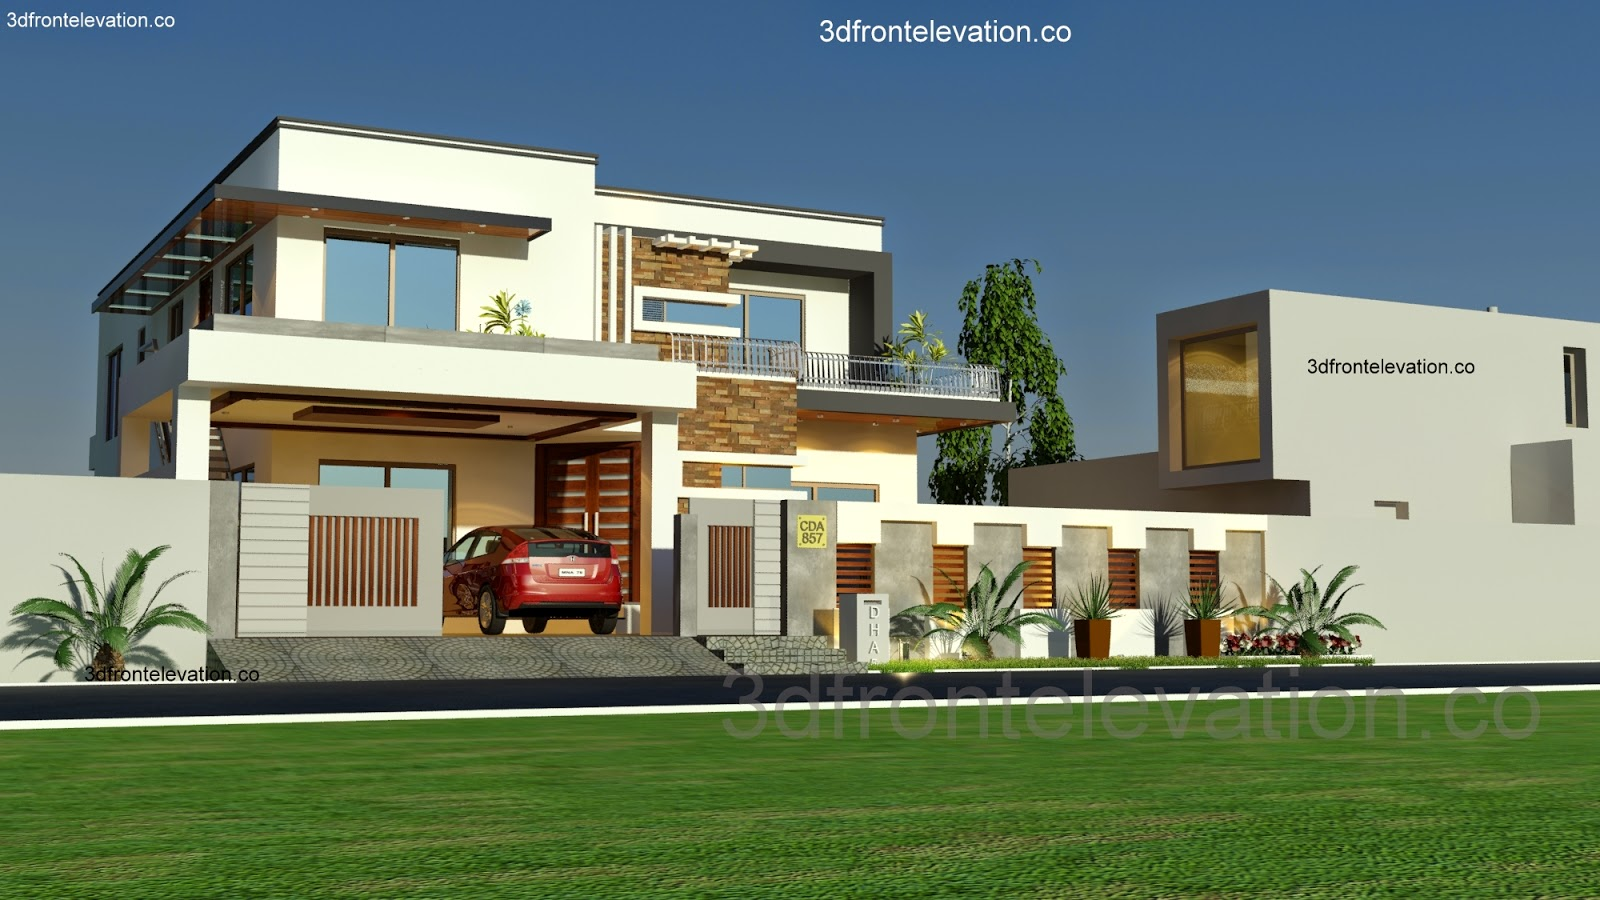 House plans and design modern duplex house plans canada for Modern home designs canada